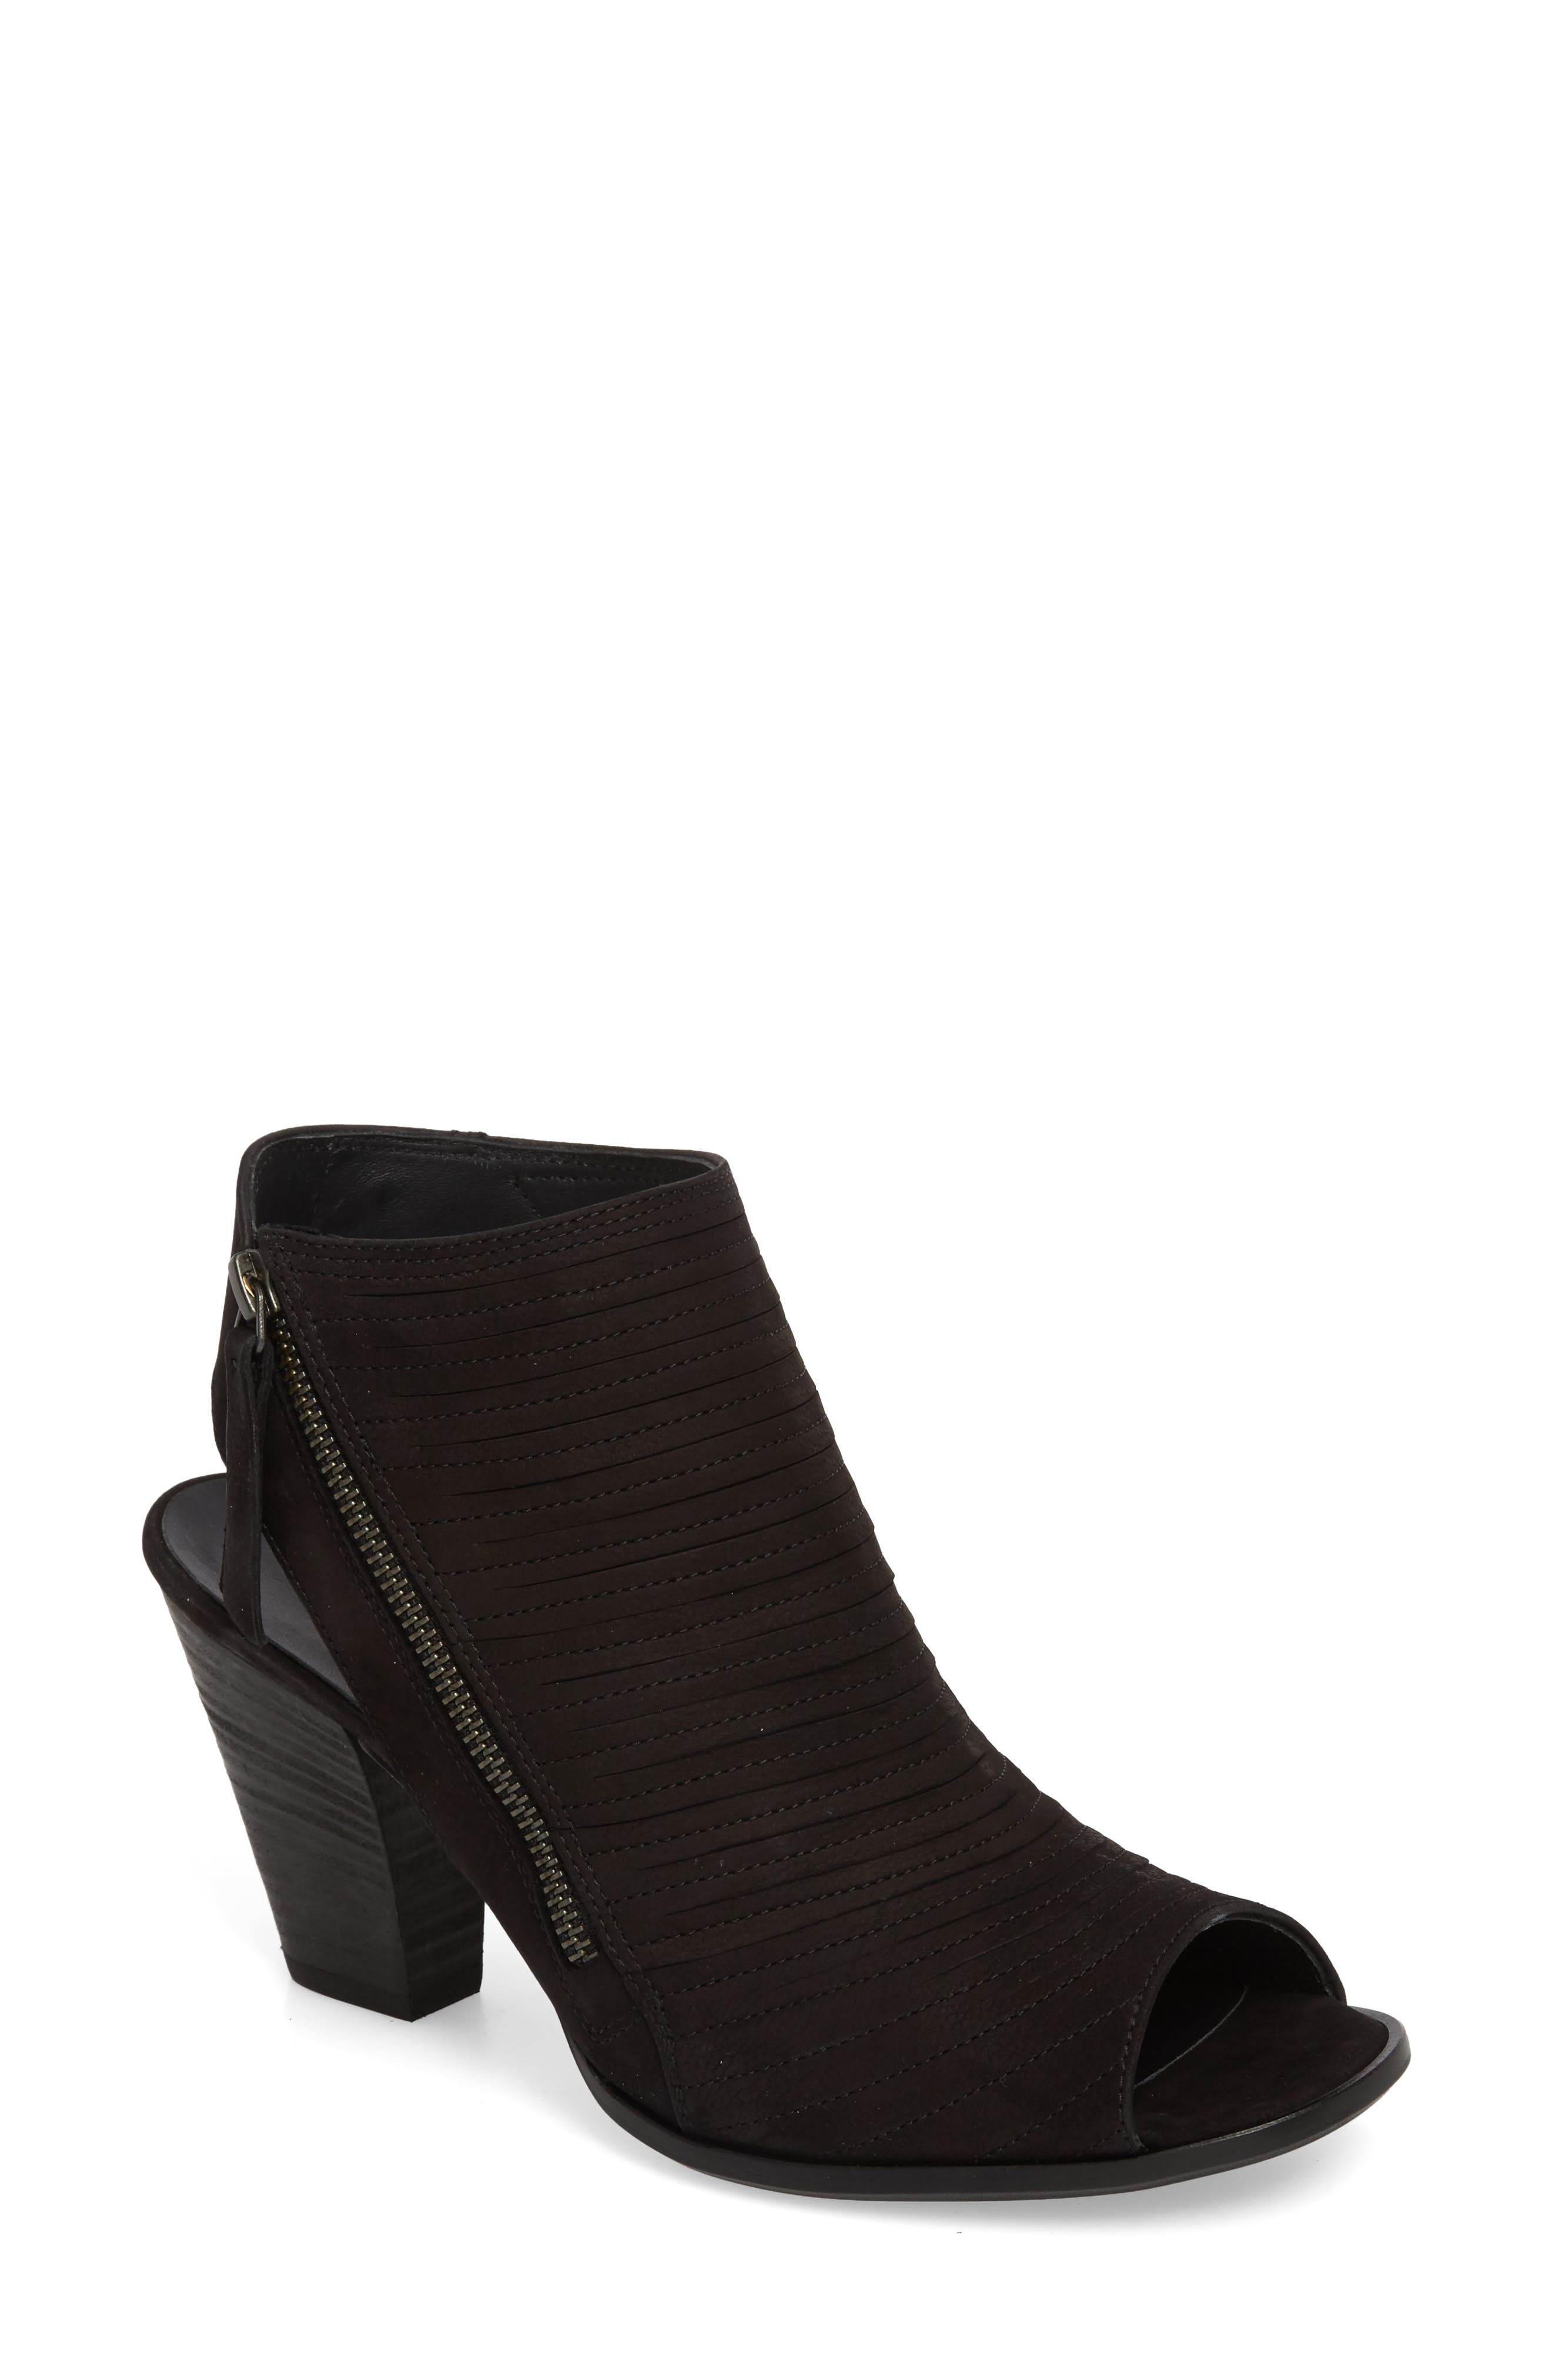 PAUL GREEN, 'Cayanne' Leather Peep Toe Sandal, Main thumbnail 1, color, BLACK SUEDE